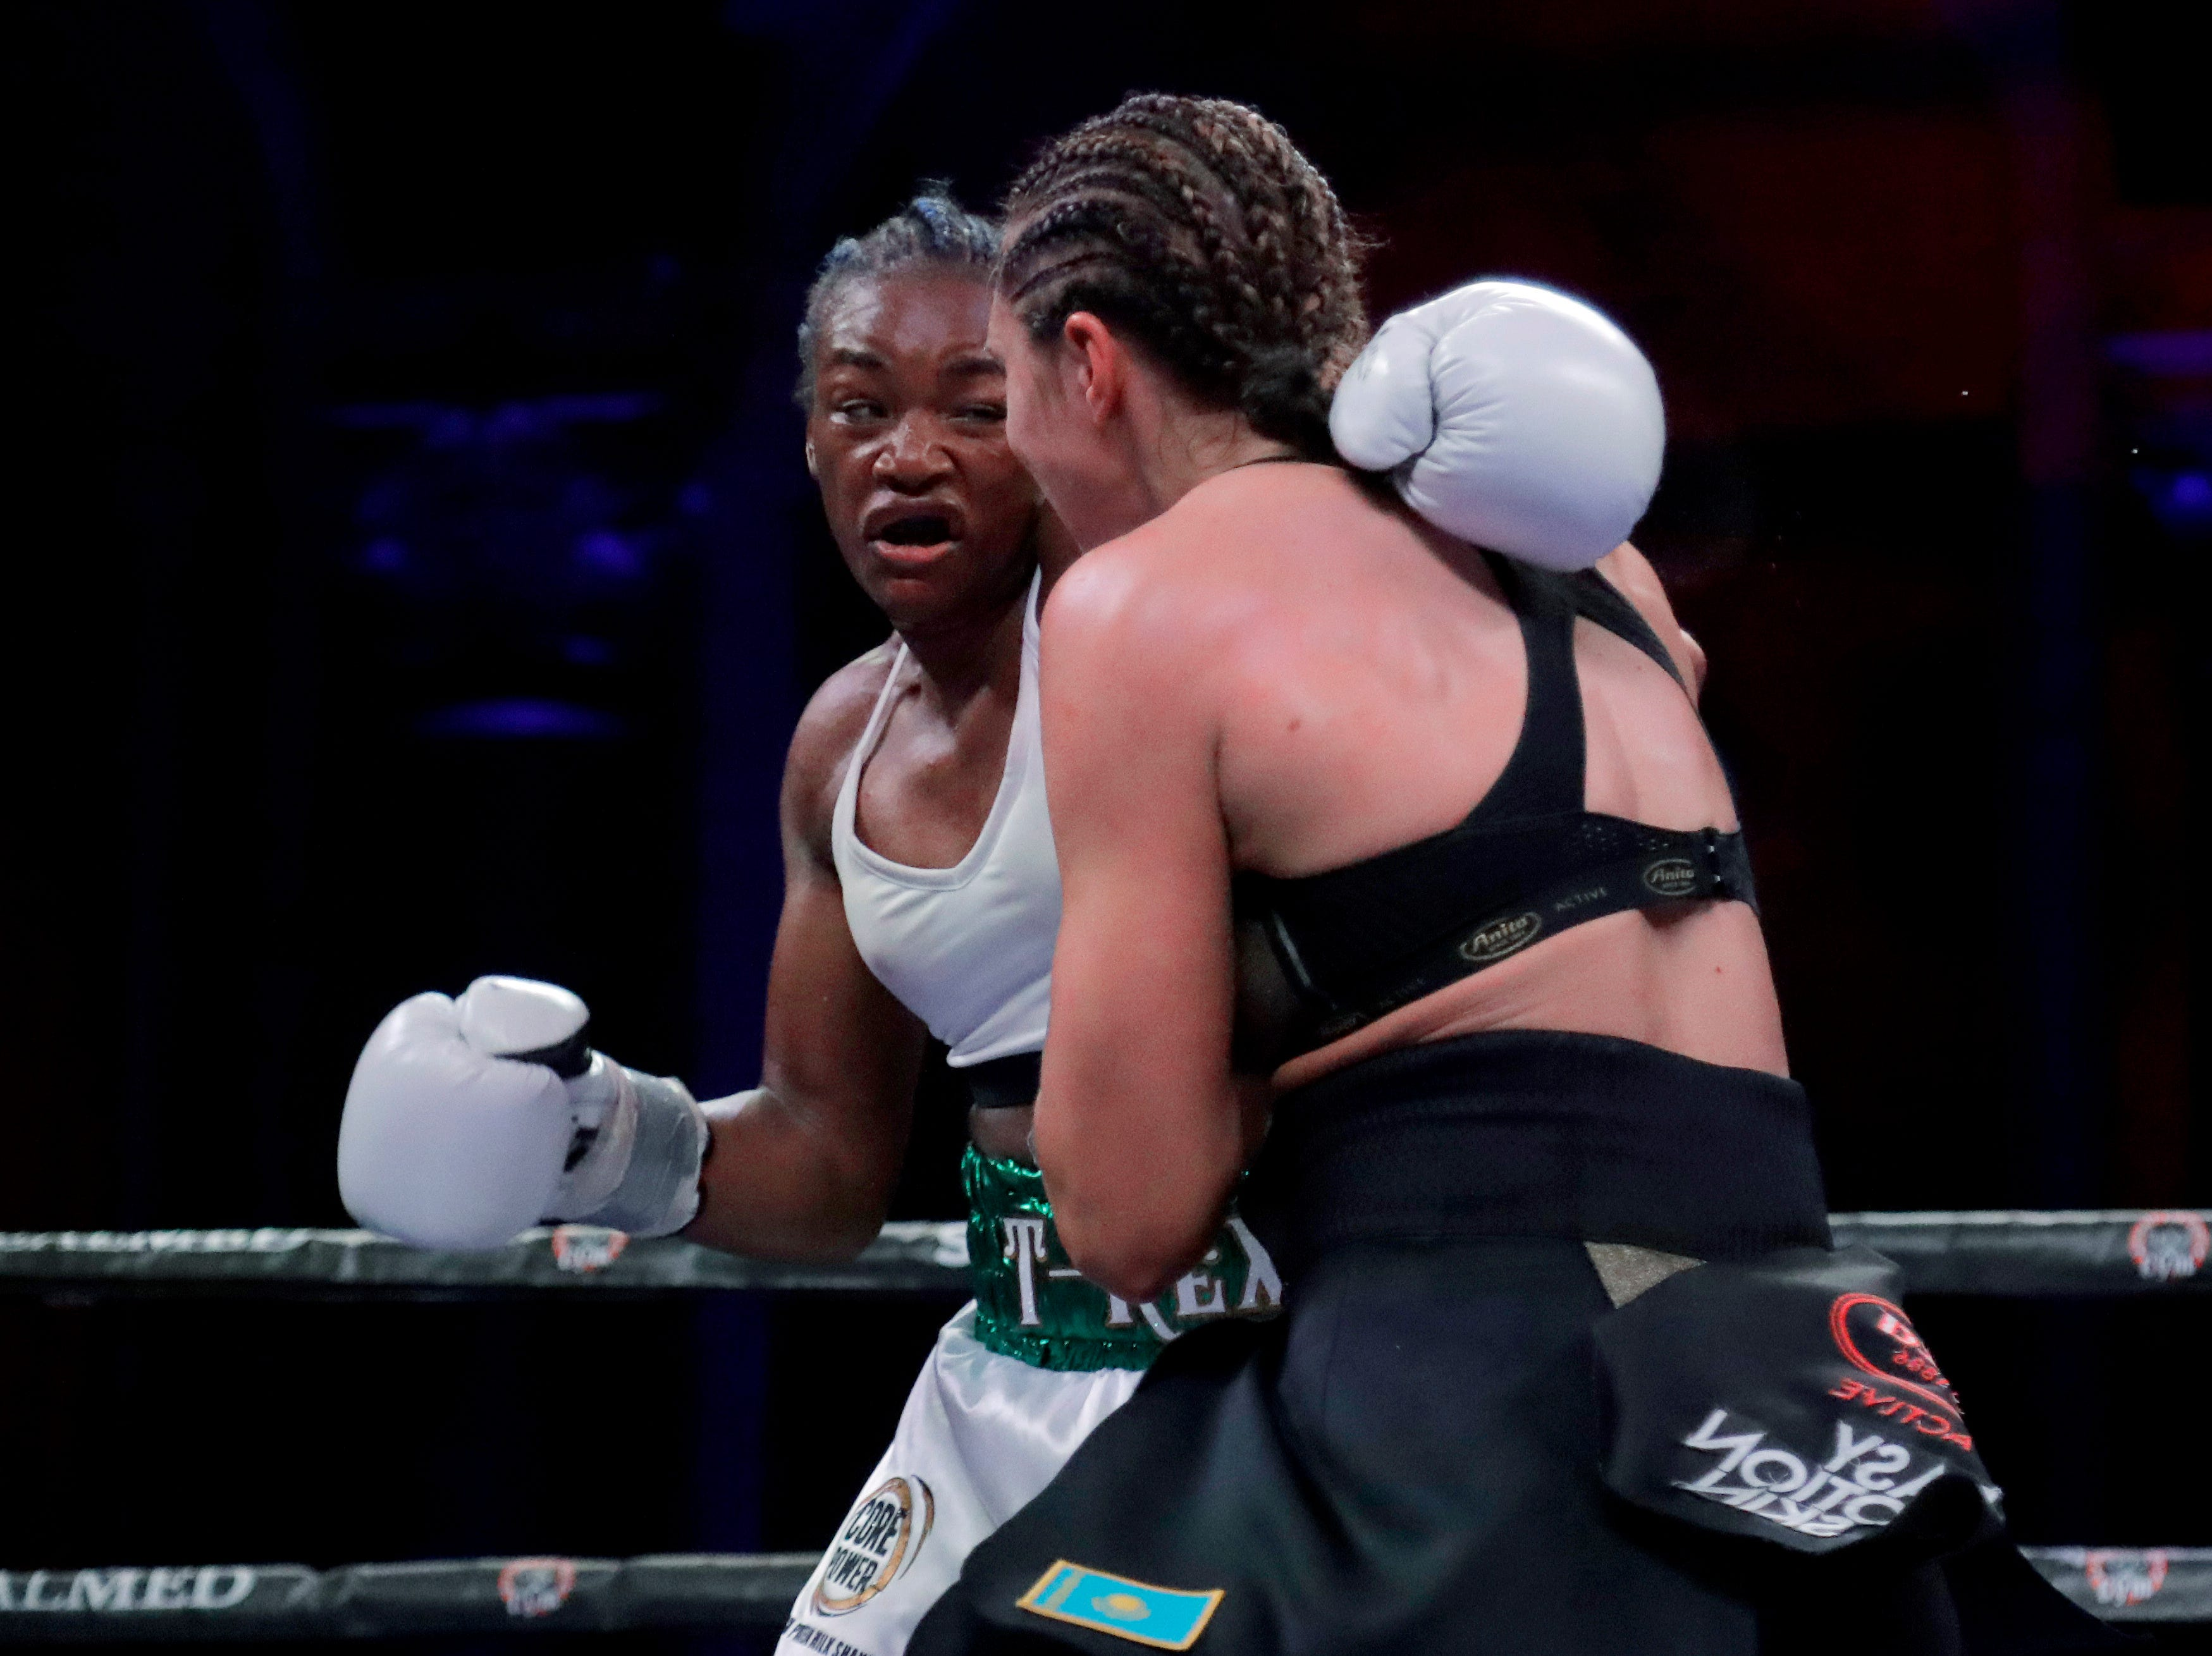 Claressa Shields, left, and Christina Hamner fight during the sixth round of a women's world middleweight championship boxing bout Saturday, April 13, 2019, in Atlantic City, N.J. Shields won by unanimous decision.